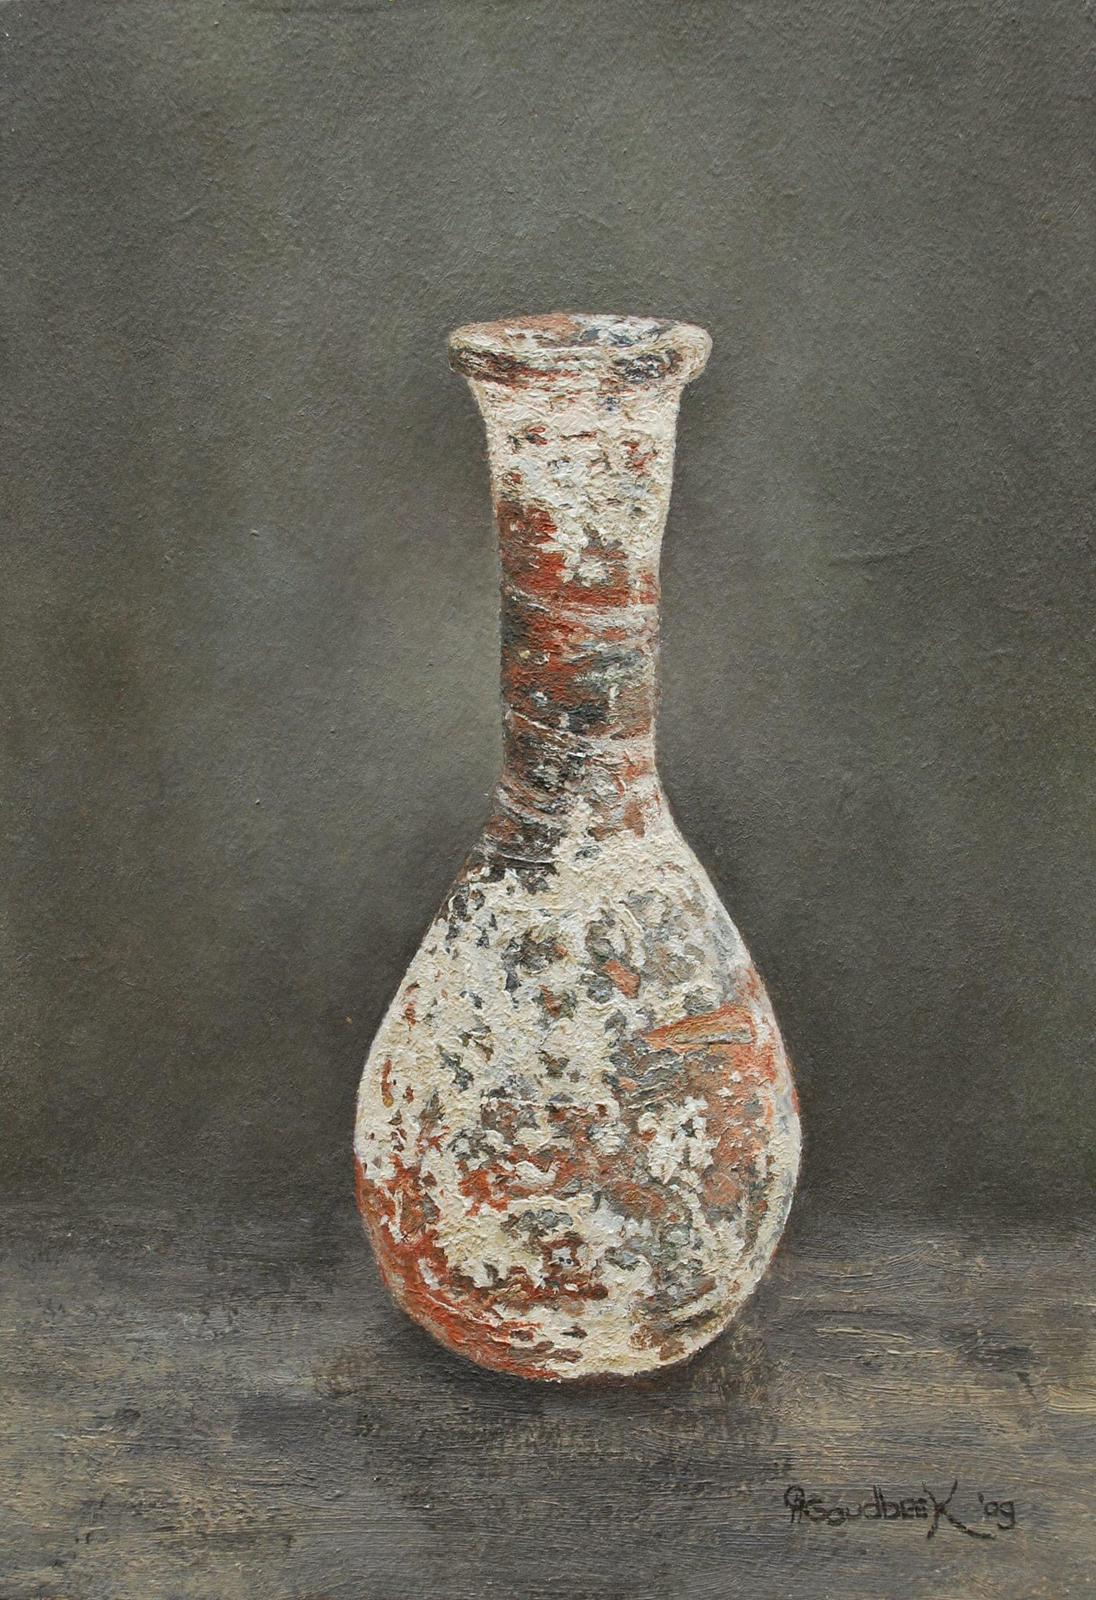 'Little antique vase'